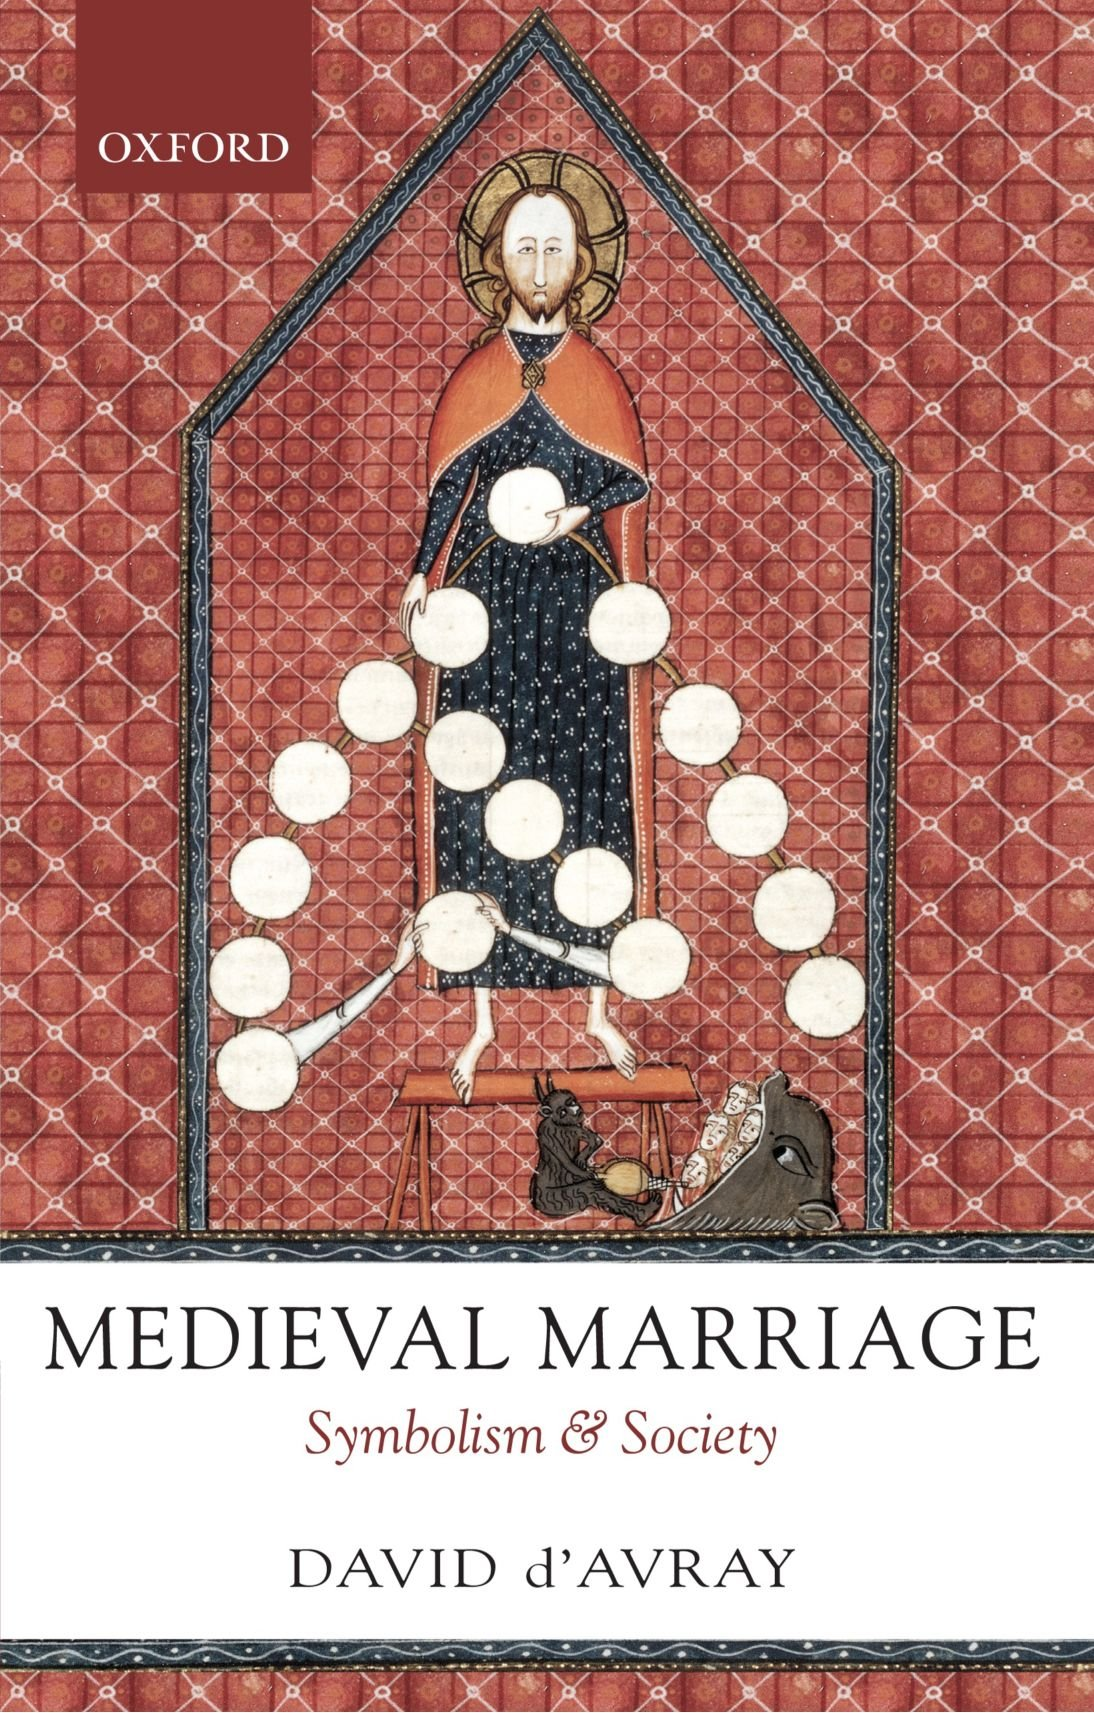 Medieval marriage symbolism and society amazon david d medieval marriage symbolism and society amazon david davray 9780199239788 books biocorpaavc Image collections